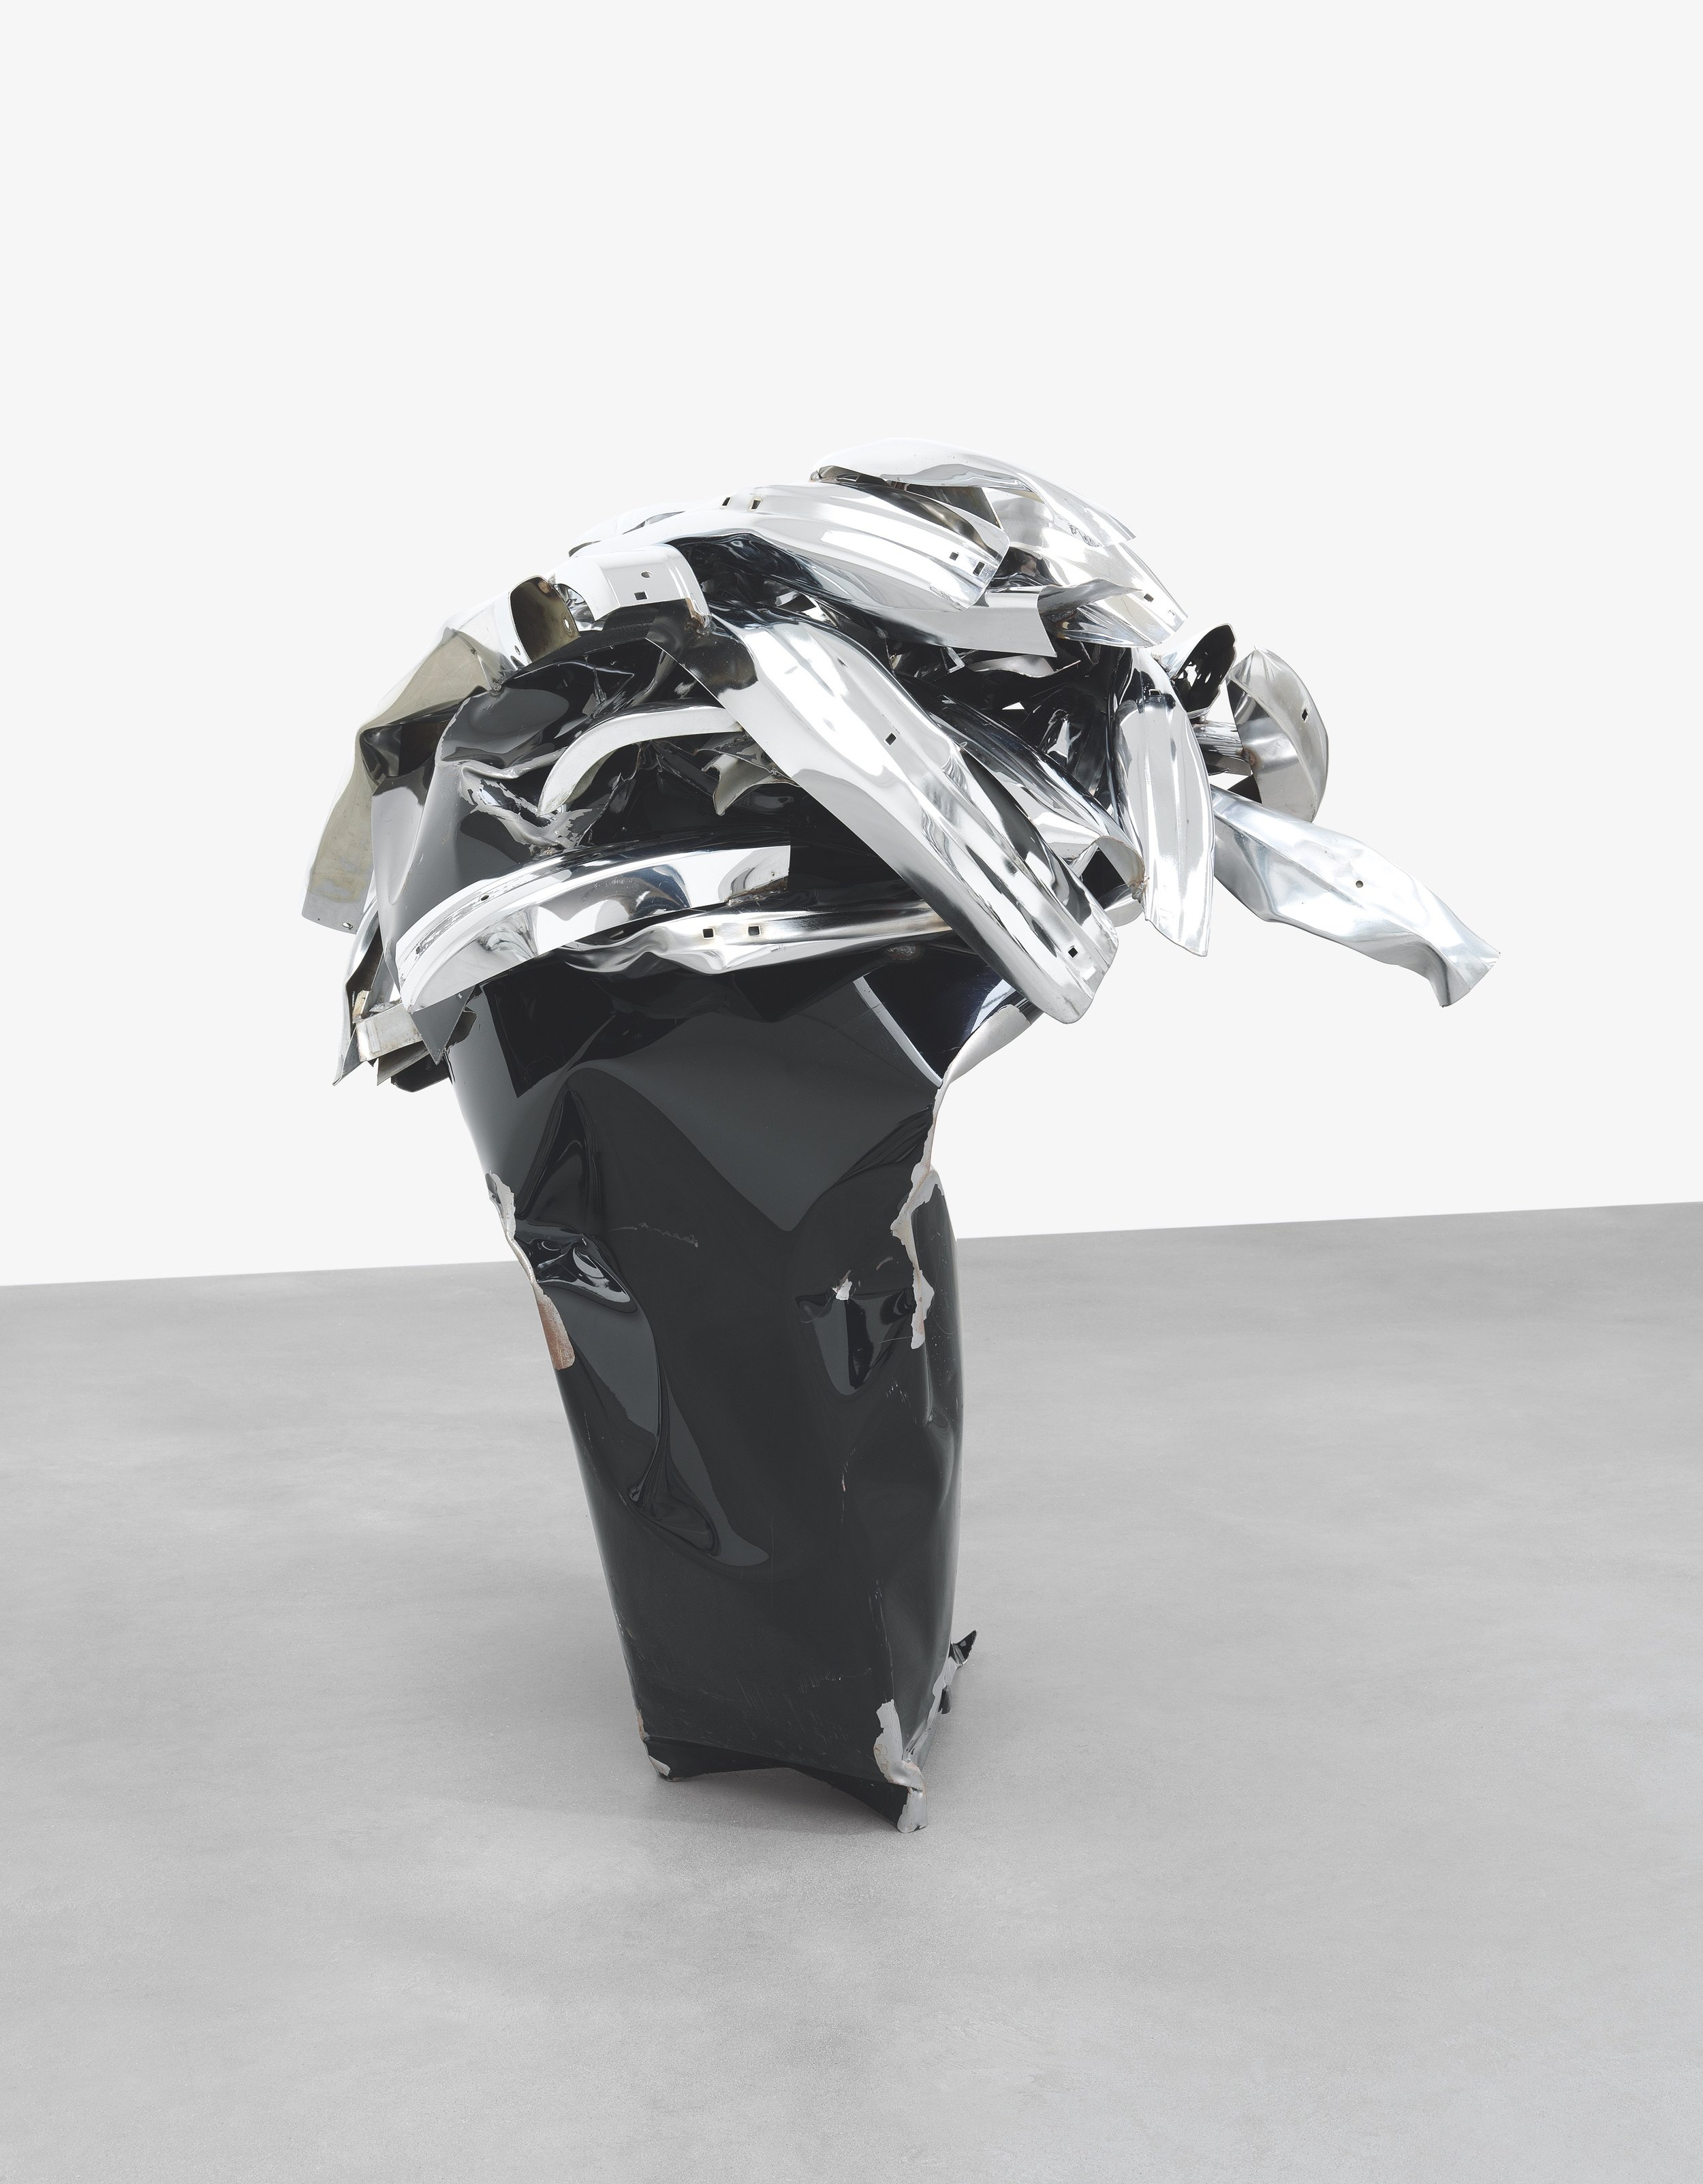 COLONELGARGLE   2008, Painted and chrome-plated steel, 52 7/8 x 56 1/8 x 40 3/8 inches (134.3 x 142.6 x 102.6 cm)  © 2018 Fairweather & Fairweather LTD/Artists Rights Society (ARS), New York